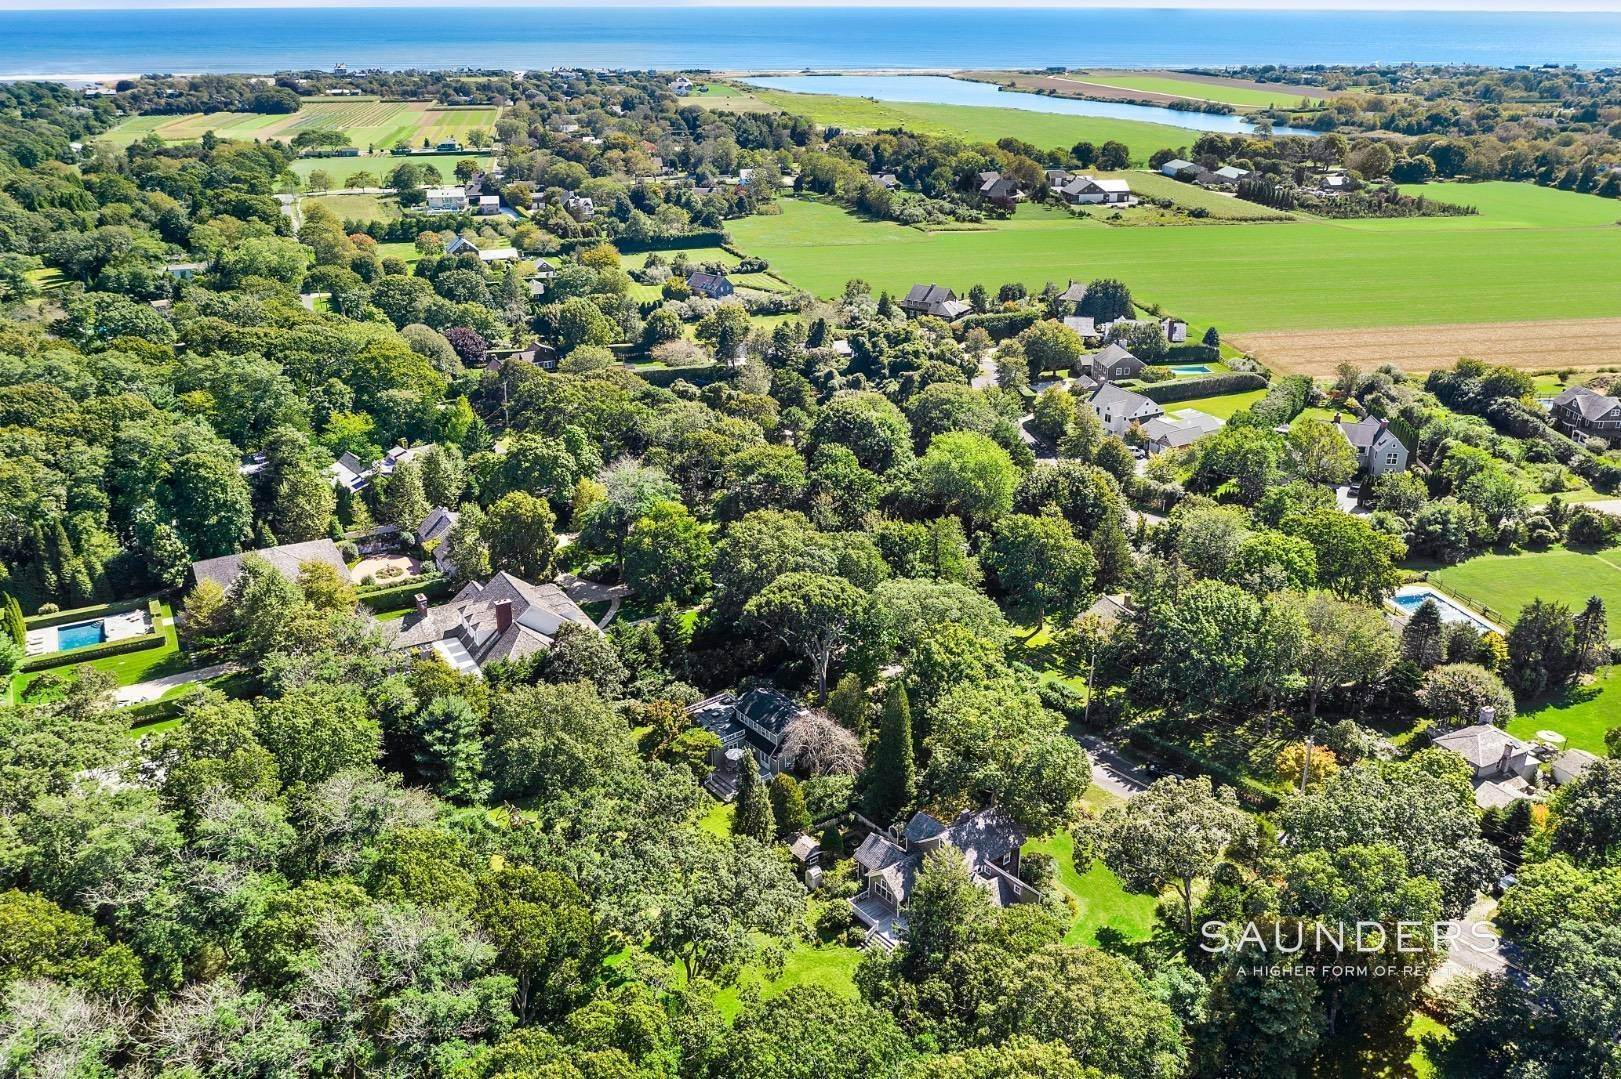 7. Single Family Homes for Sale at Sayres Path 2 Acre Opportunity 129 Sayres Path, Wainscott, East Hampton Town, NY 11937